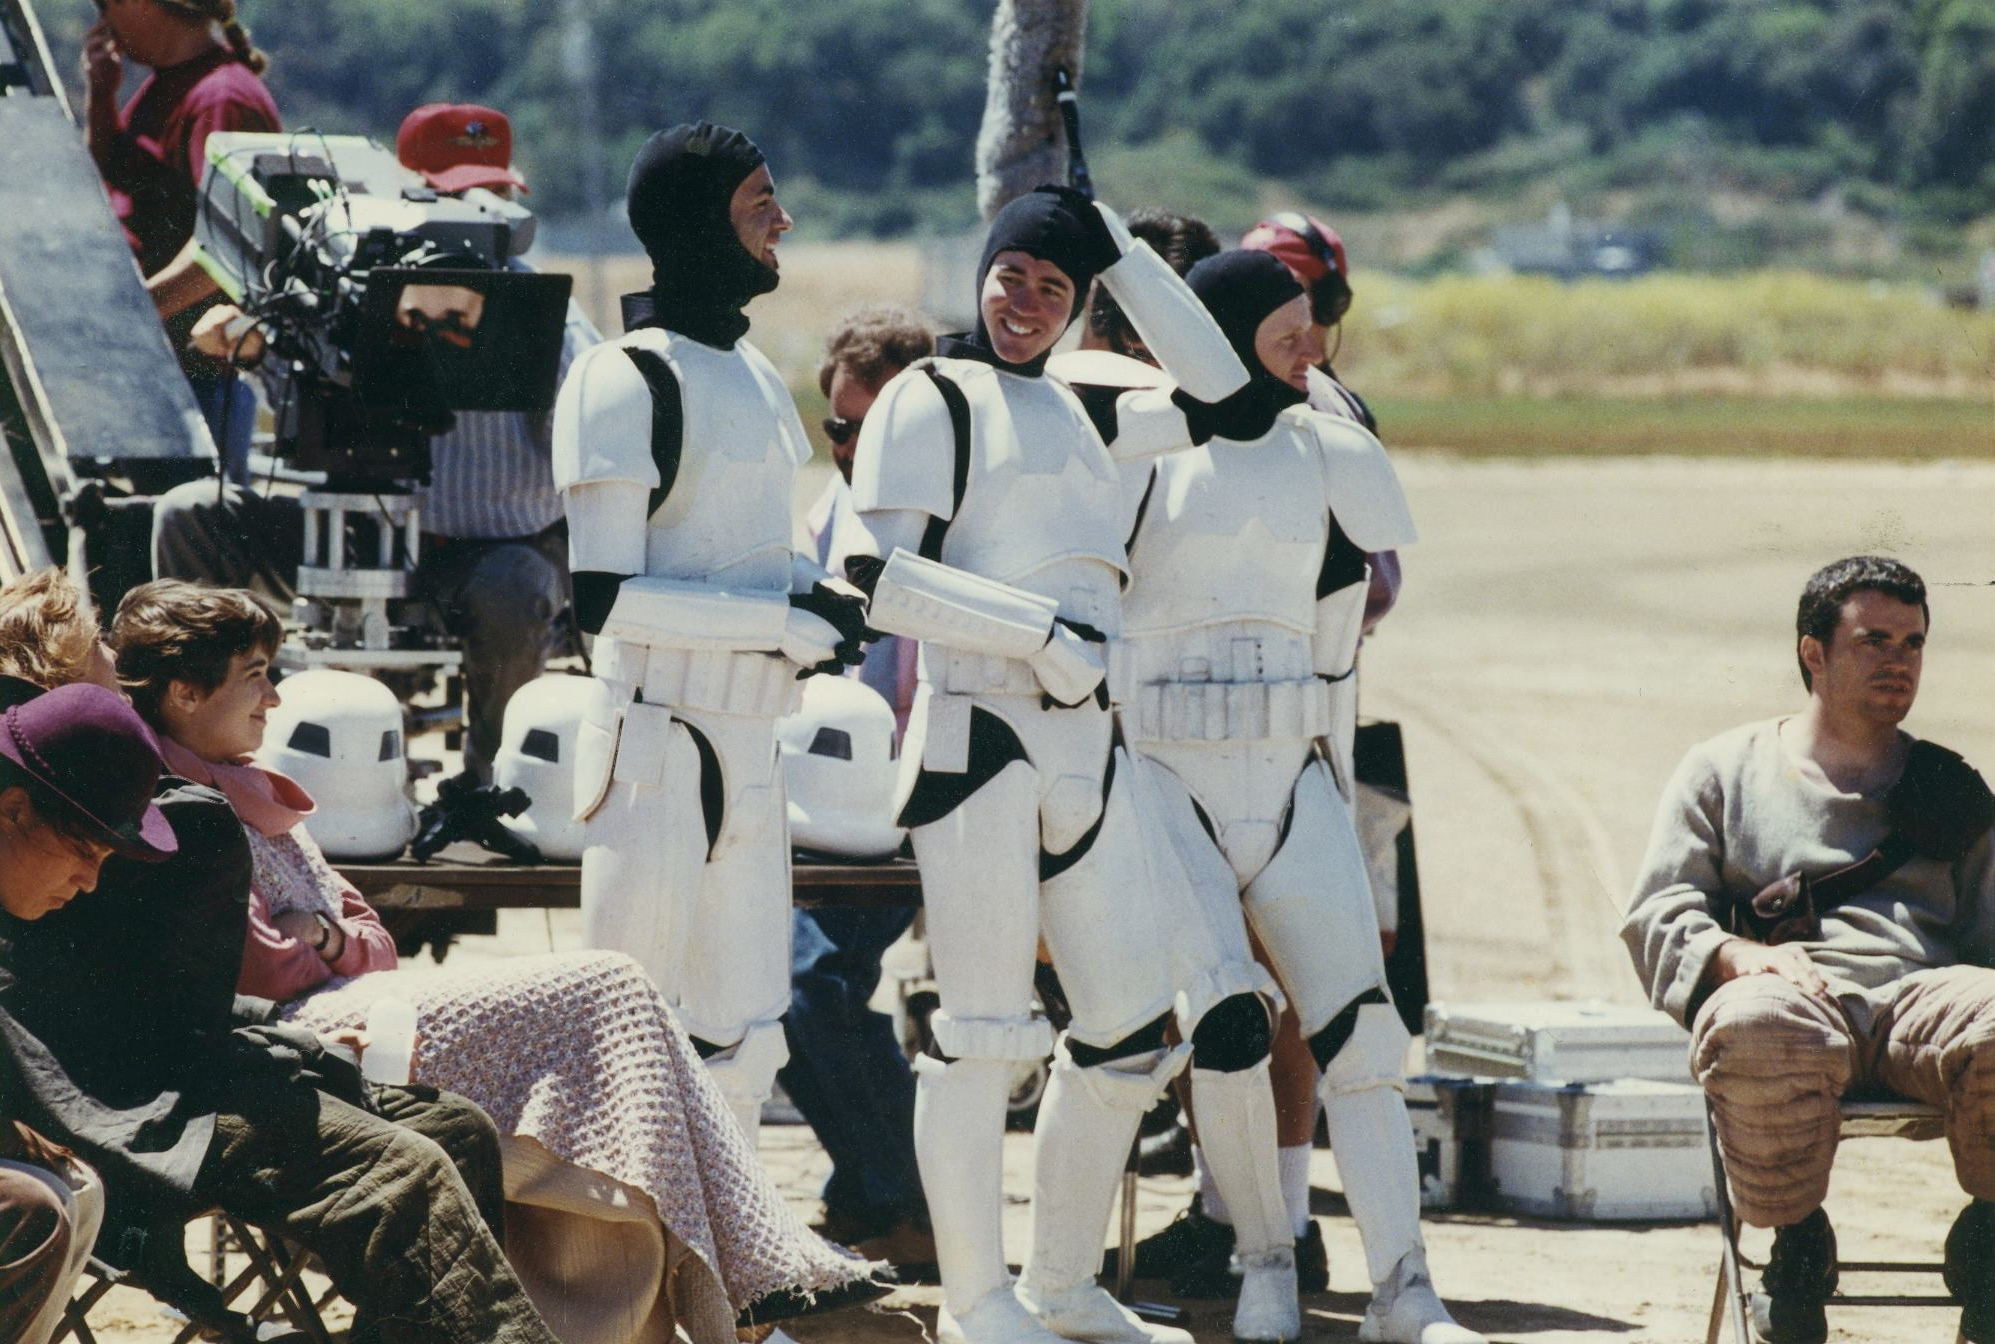 Me as a Stormtrooper extra on set during the shooting of insert shots for Star Wars: A New Hope - Special Edition. It was a fun day at work on the back lot at Industrial Light & Magic where I worked as a visual effects artist from 1992- 1999.